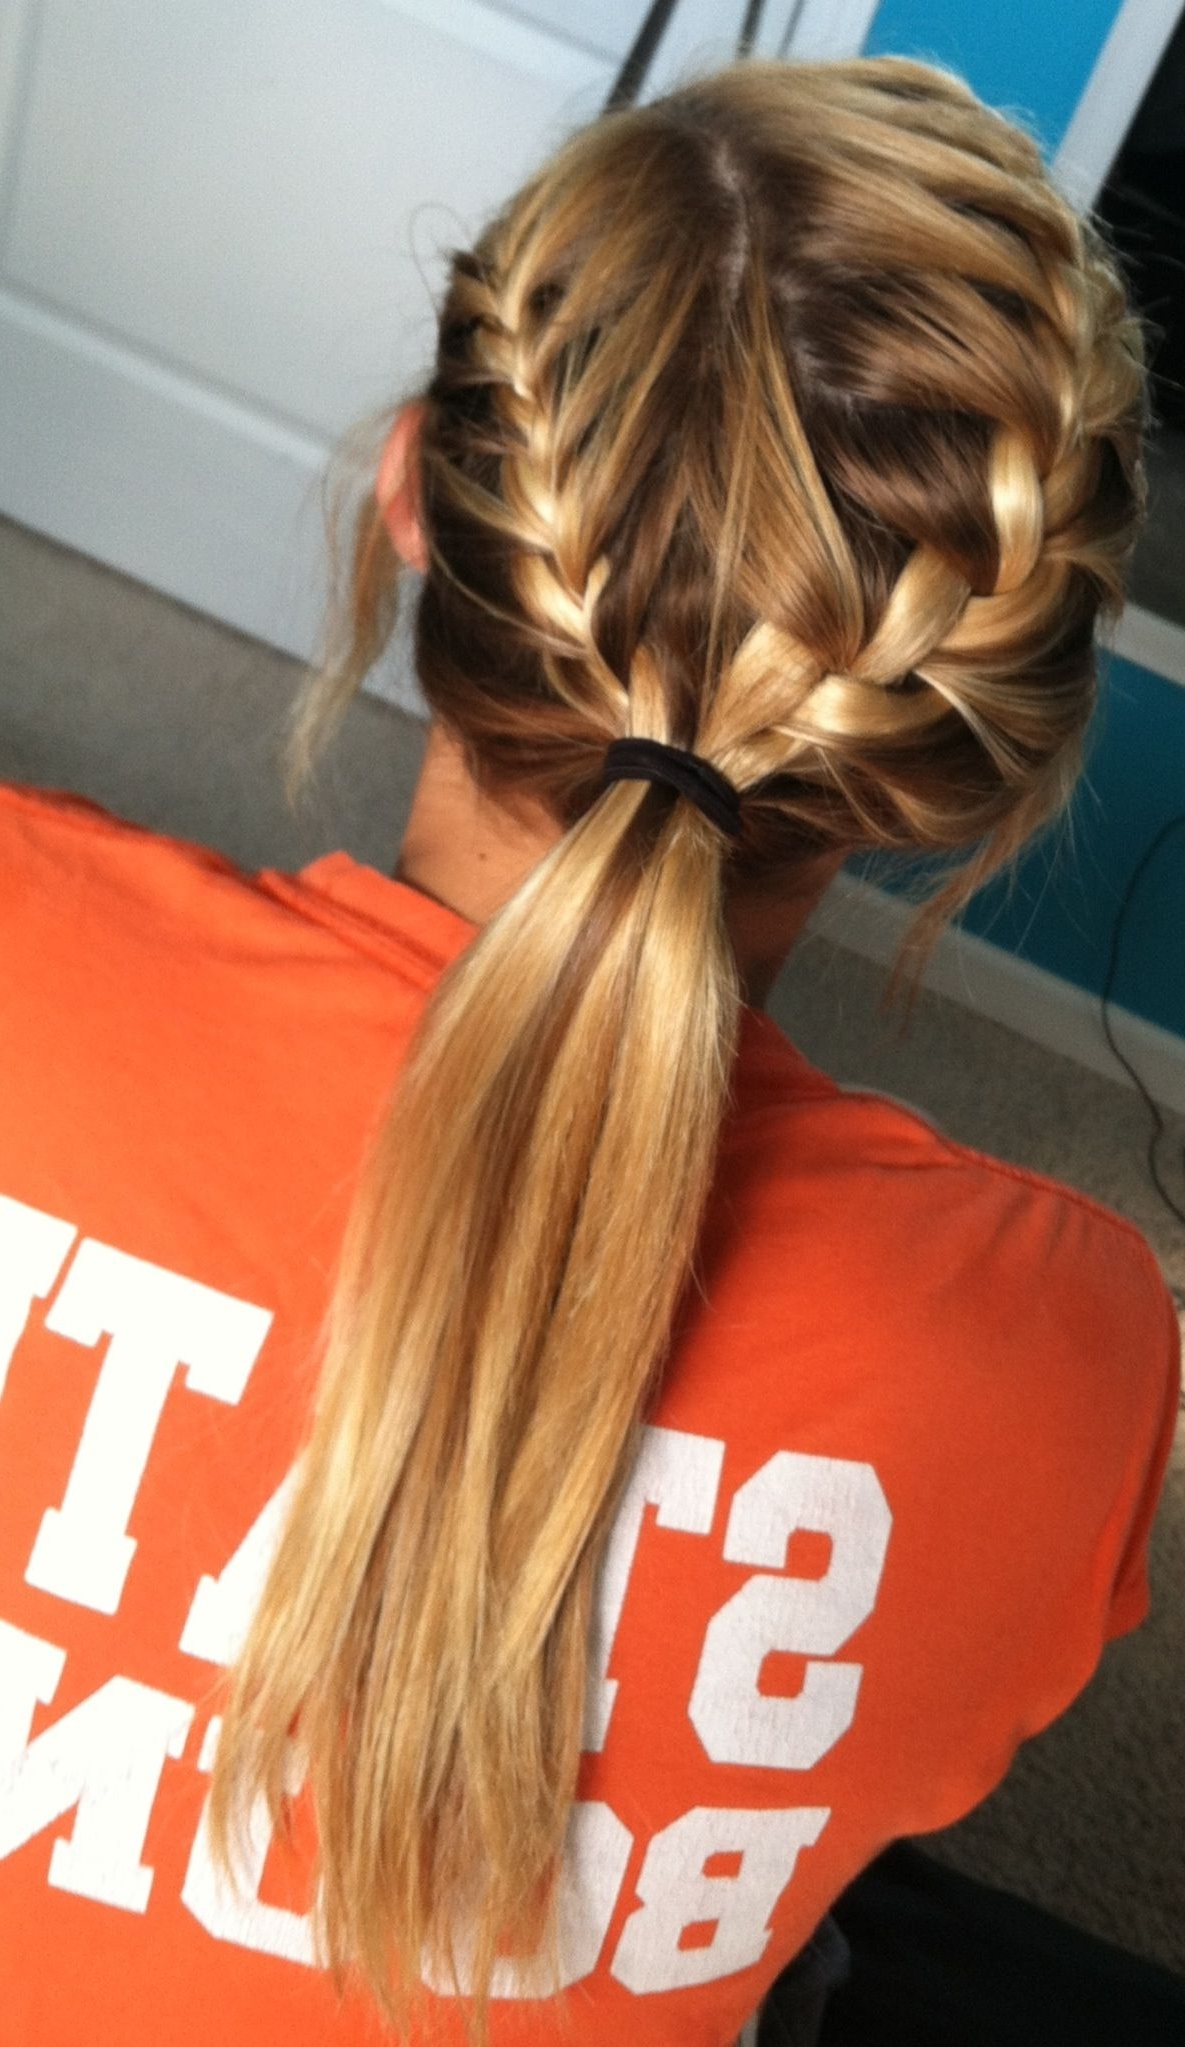 Braided Long Hairstyles Intended For Recent Intricate And Adorable French Braid Ponytail Hairstyles (View 2 of 20)